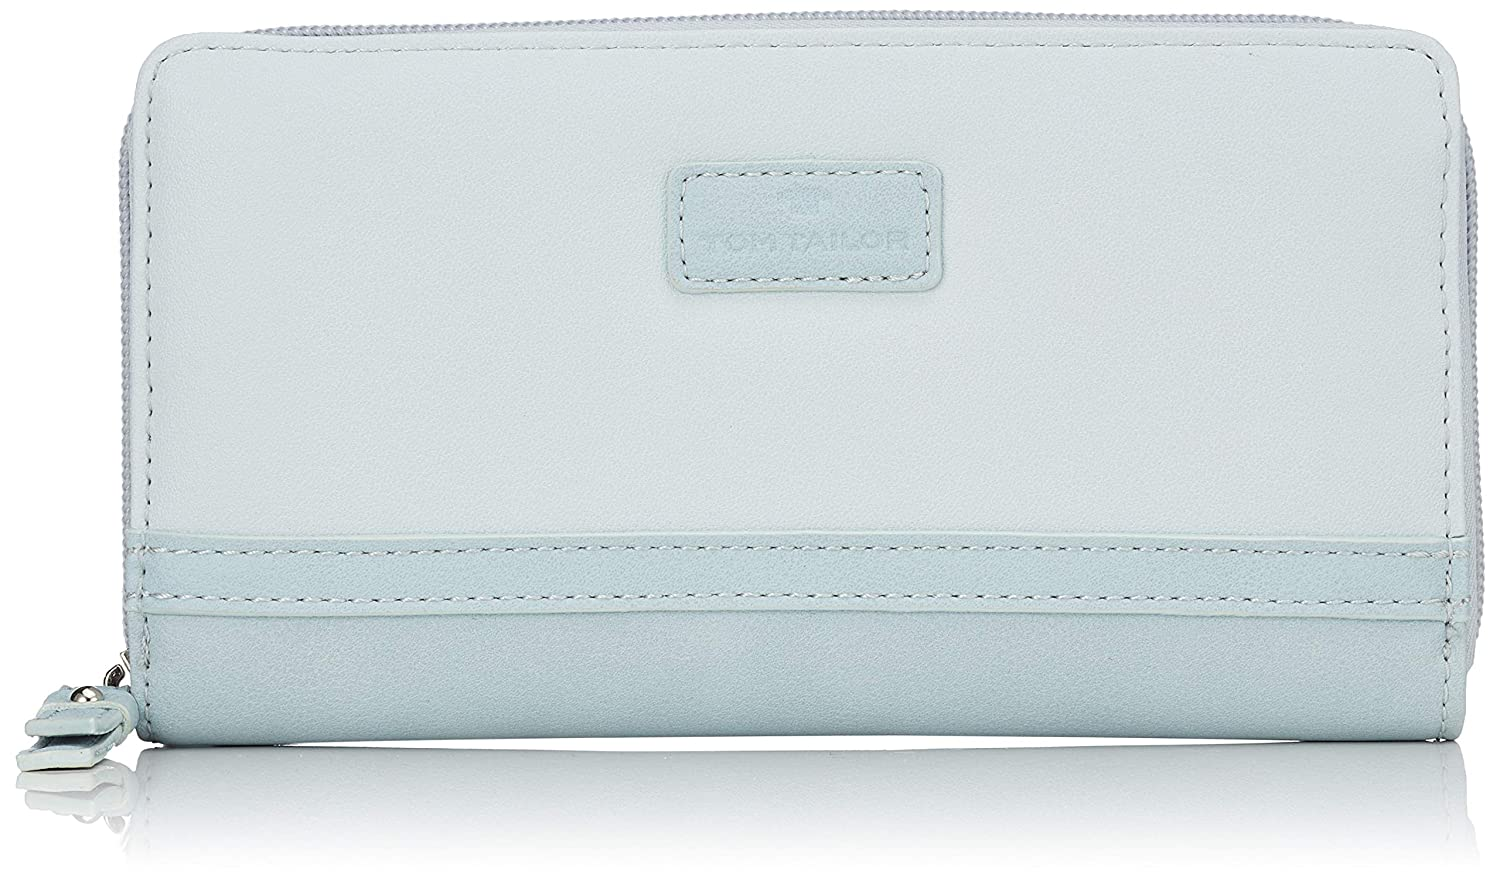 TOM TAILOR Portemonnaie Damen, Elin Flash, 20x10.5x2.5 cm, Geldbeutel Damen